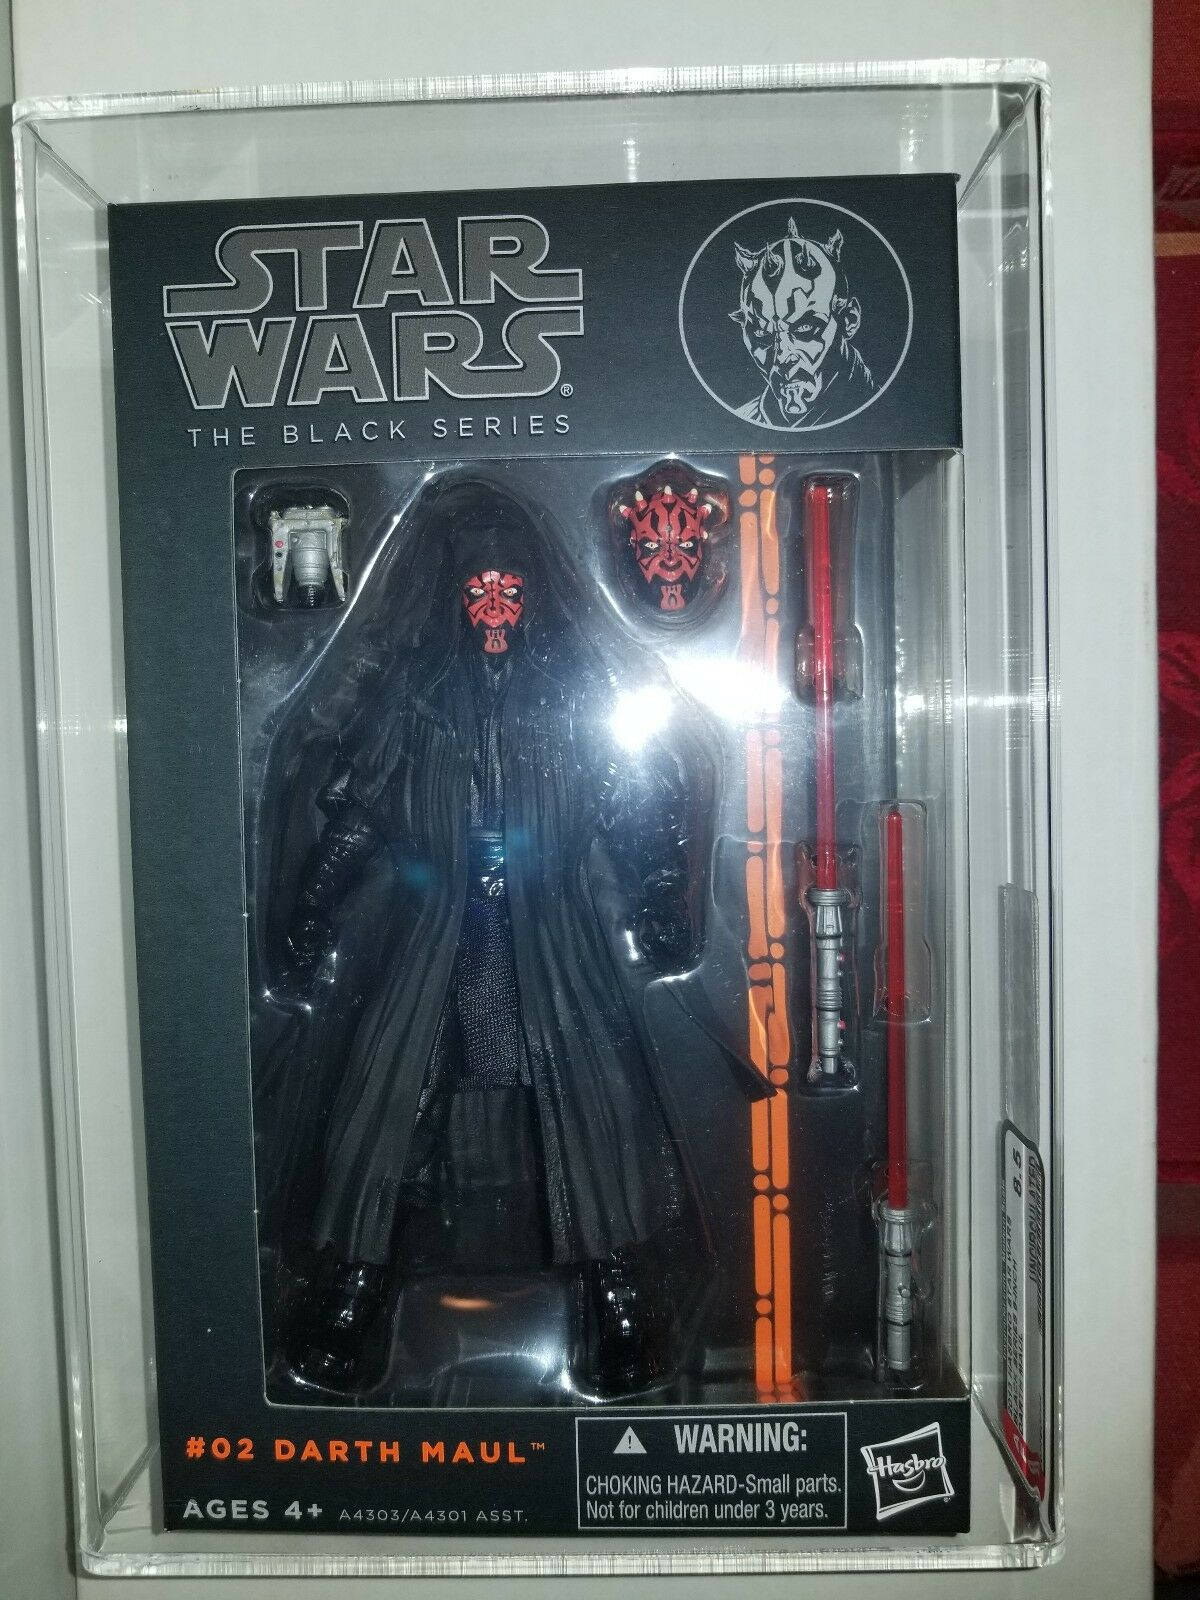 Star Wars negro Series Darth Maul 2013 AFA 8.5 Uncirculated